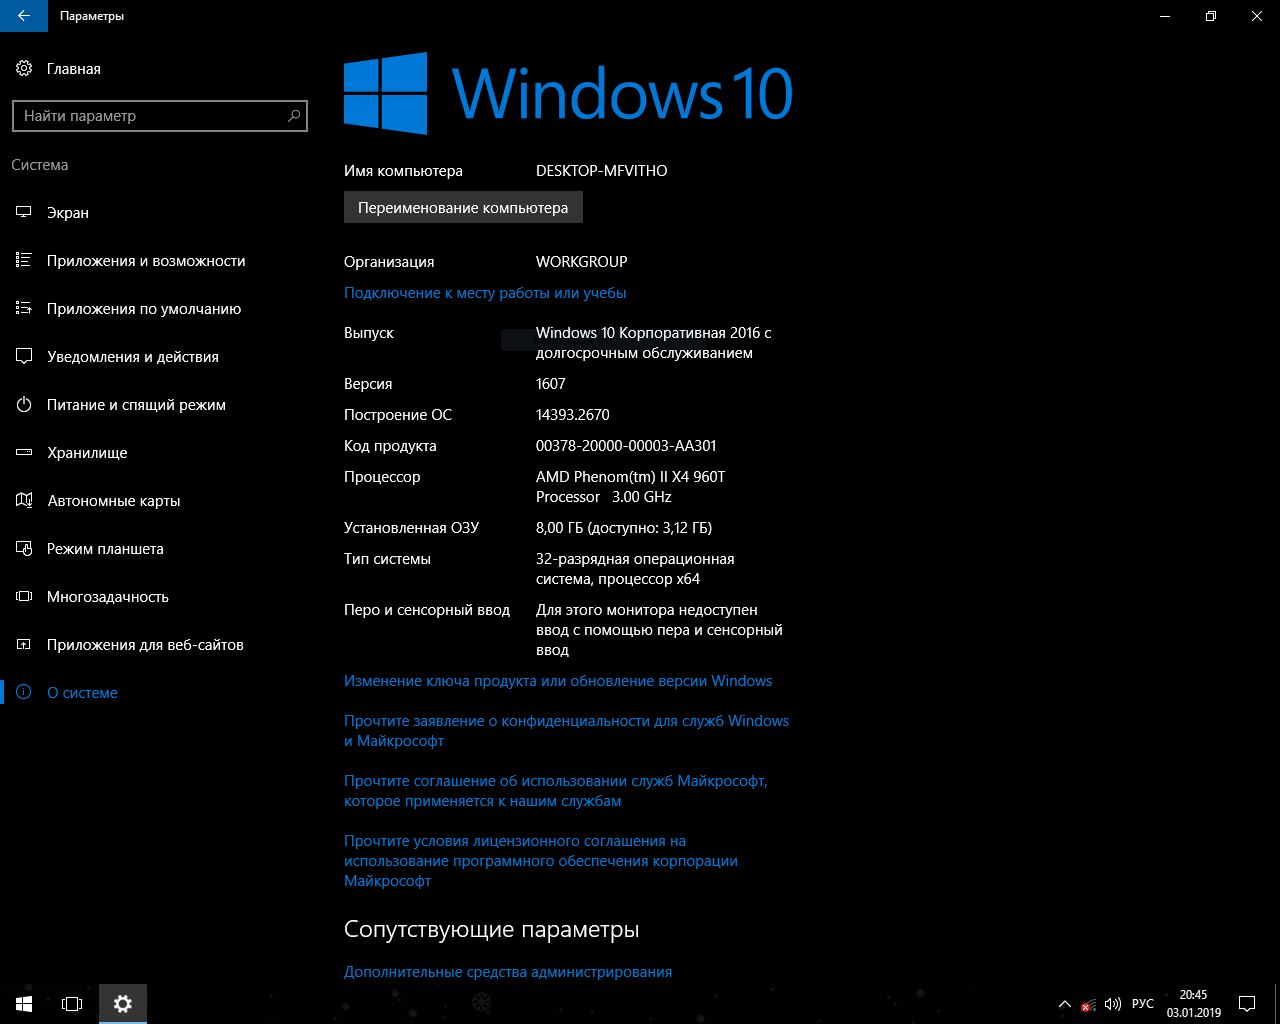 Скачать Windows 10 Enterprise LTSB 2016 v1607 x64_x86 [ 4in1